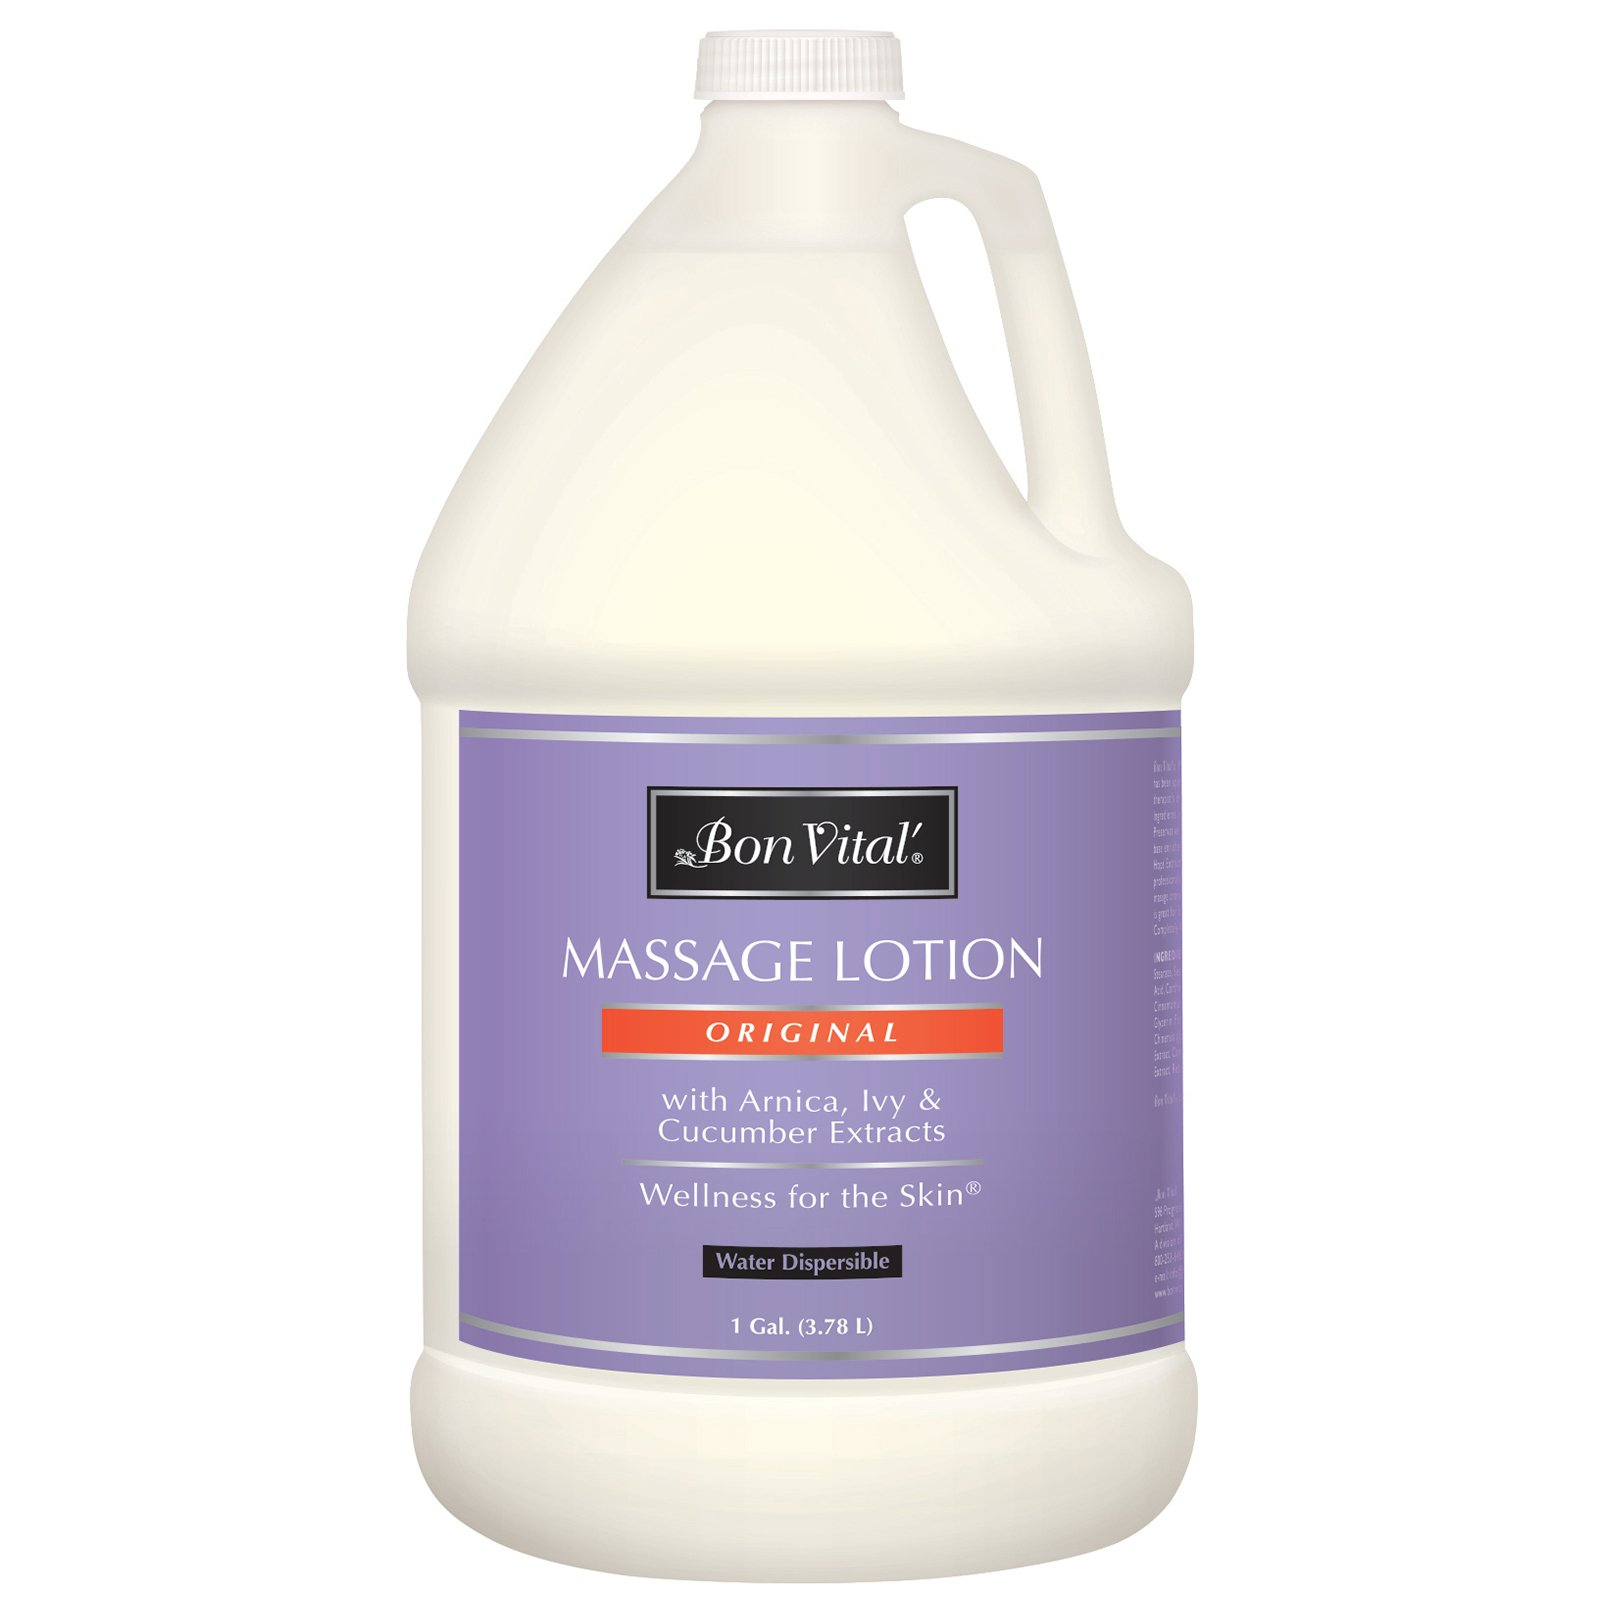 Bon Vital' Original Massage Lotion for a Versatile Massage Foundation to Relax Sore Muscles & Repair Dry Skin, Lightweight, Non-Greasy Formula to Moisturize and Repair Dry Skin, 1 Gallon Bottle by Bon Vital